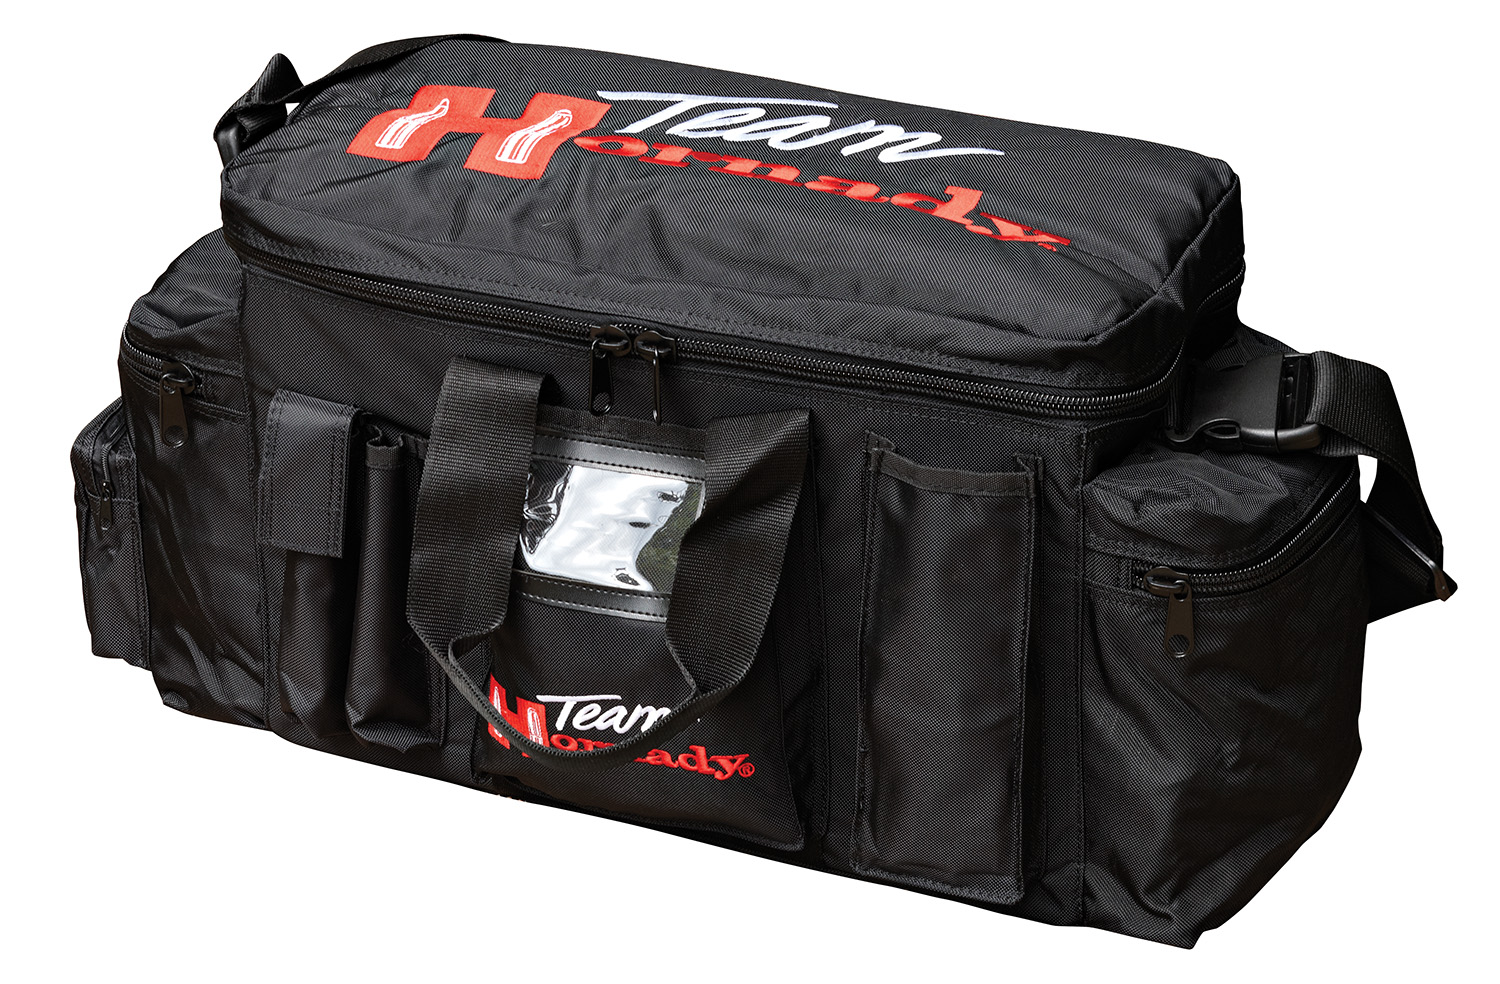 Hornady 9919 Team Hornady Range Bag Black Nylon